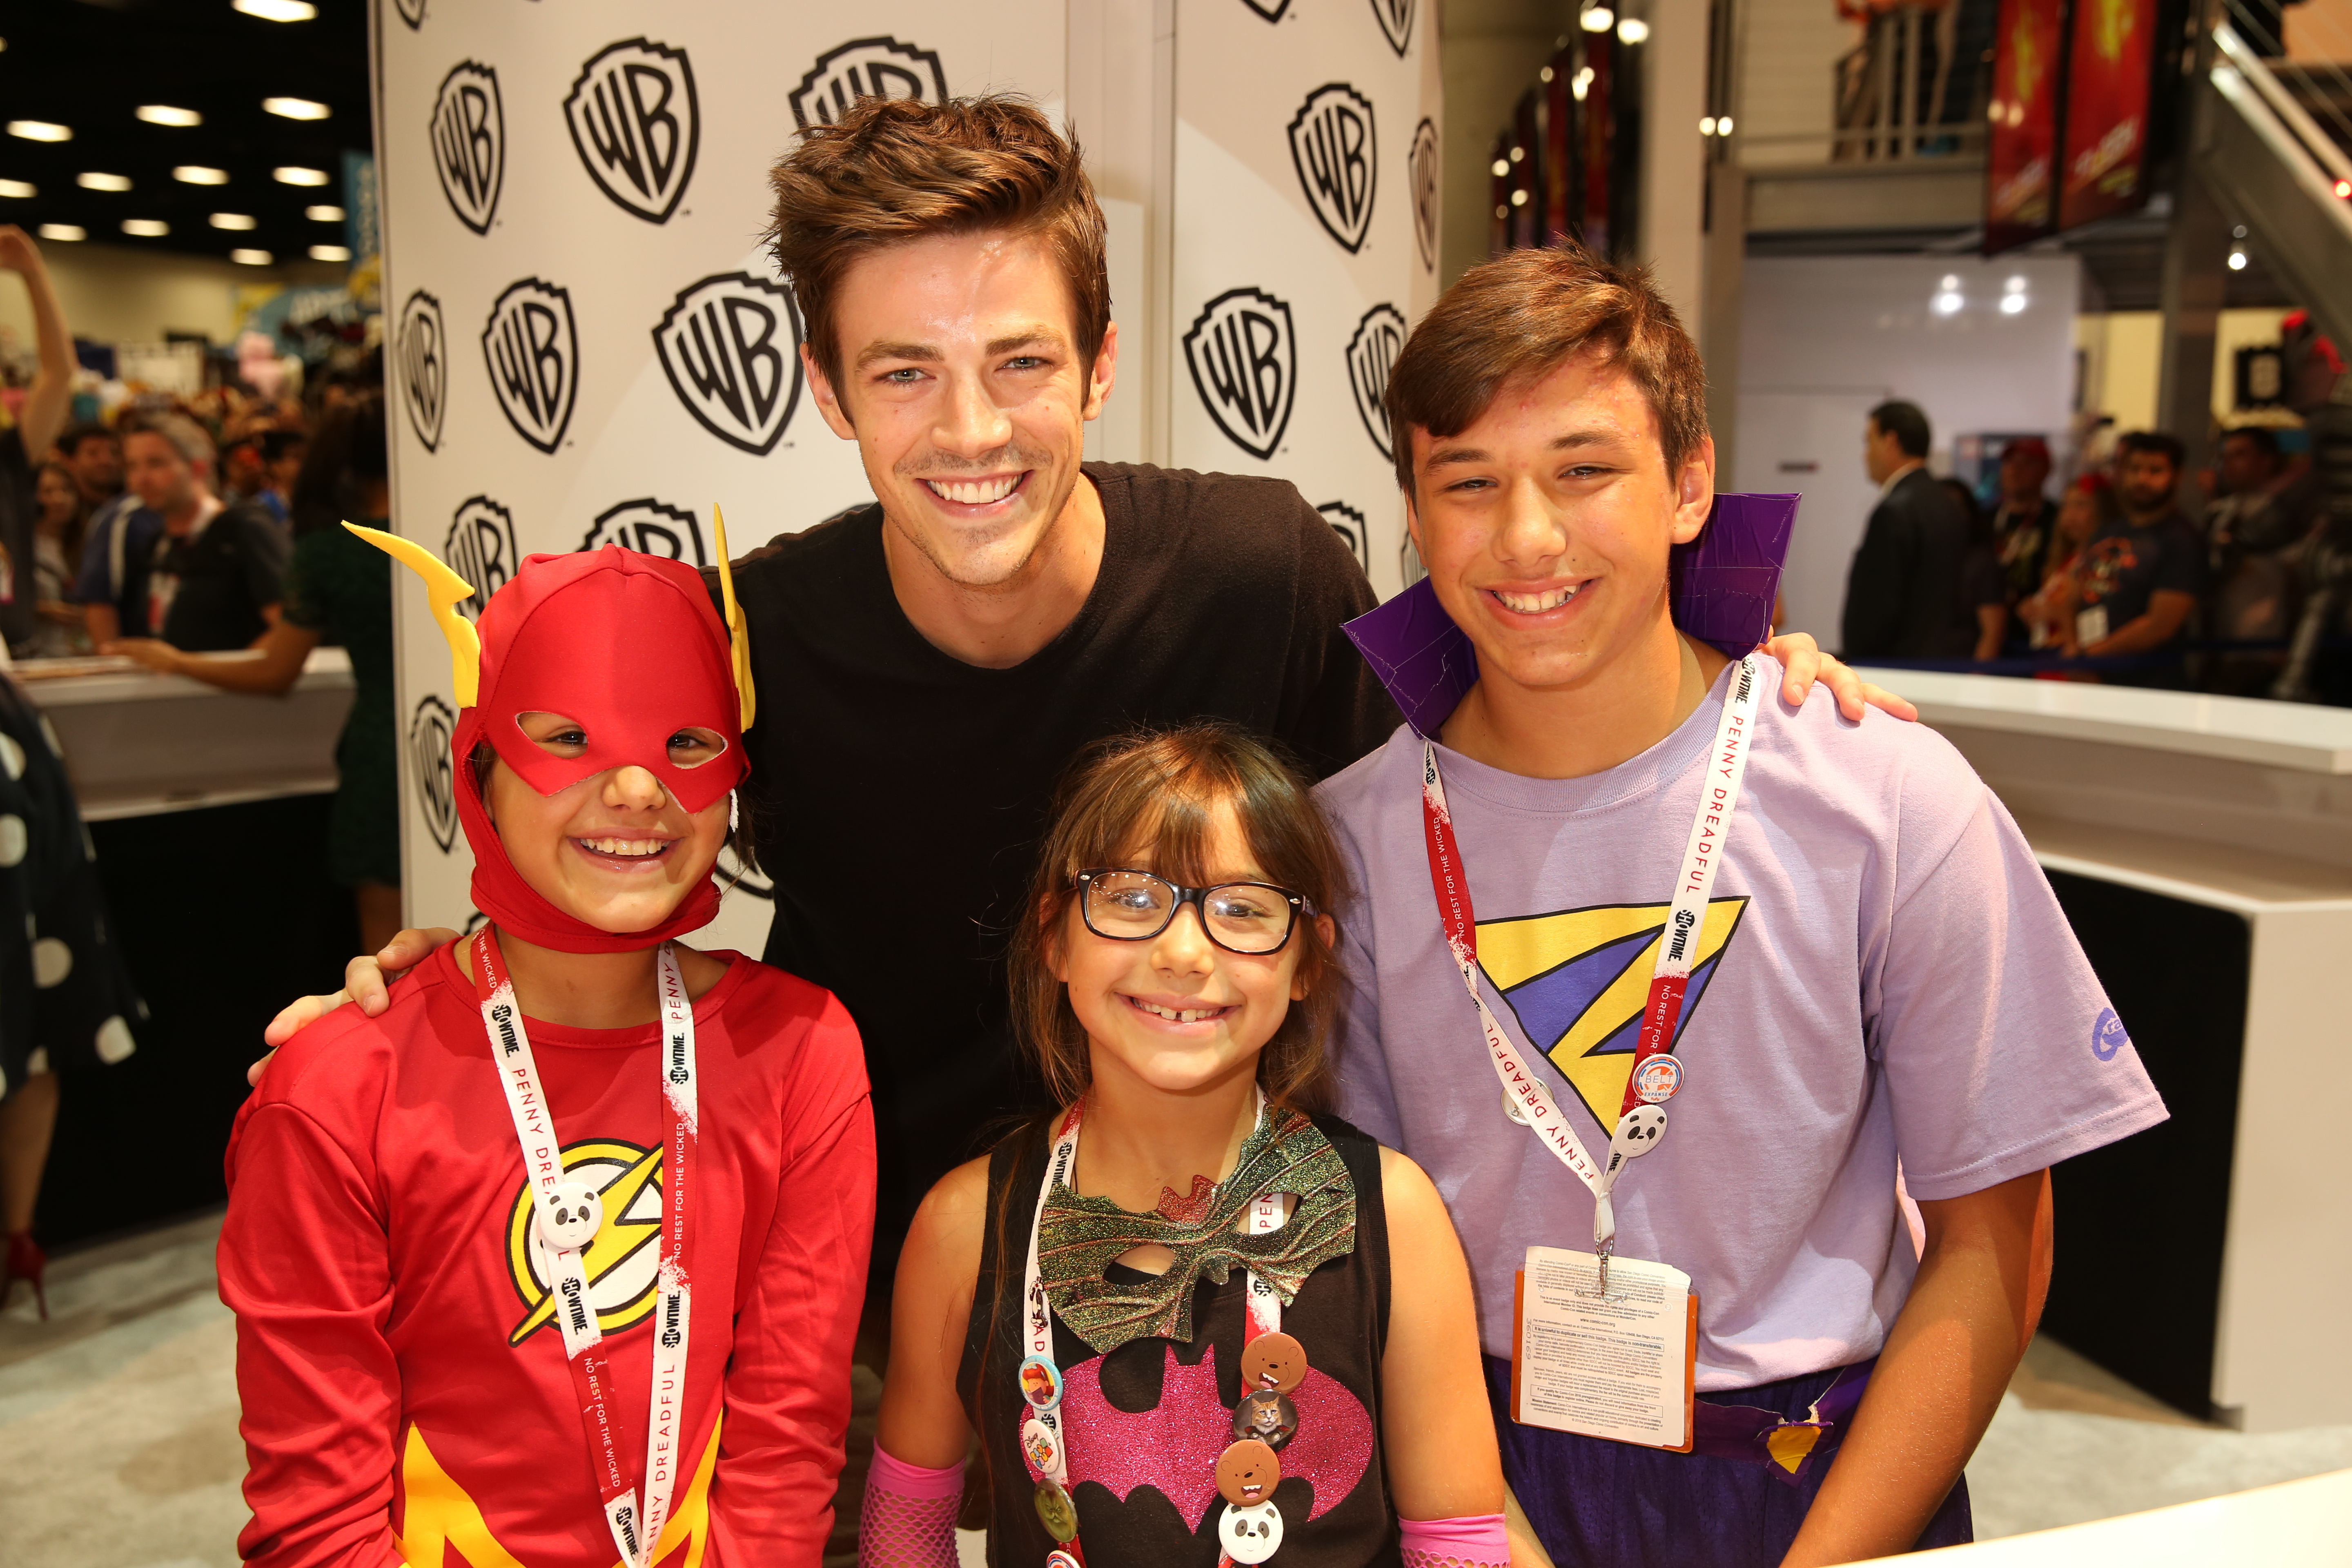 Grant gustin meet and greet images greeting card designs grant gustin meet and greet image collections greeting card designs grant gustin meet and greet gallery m4hsunfo